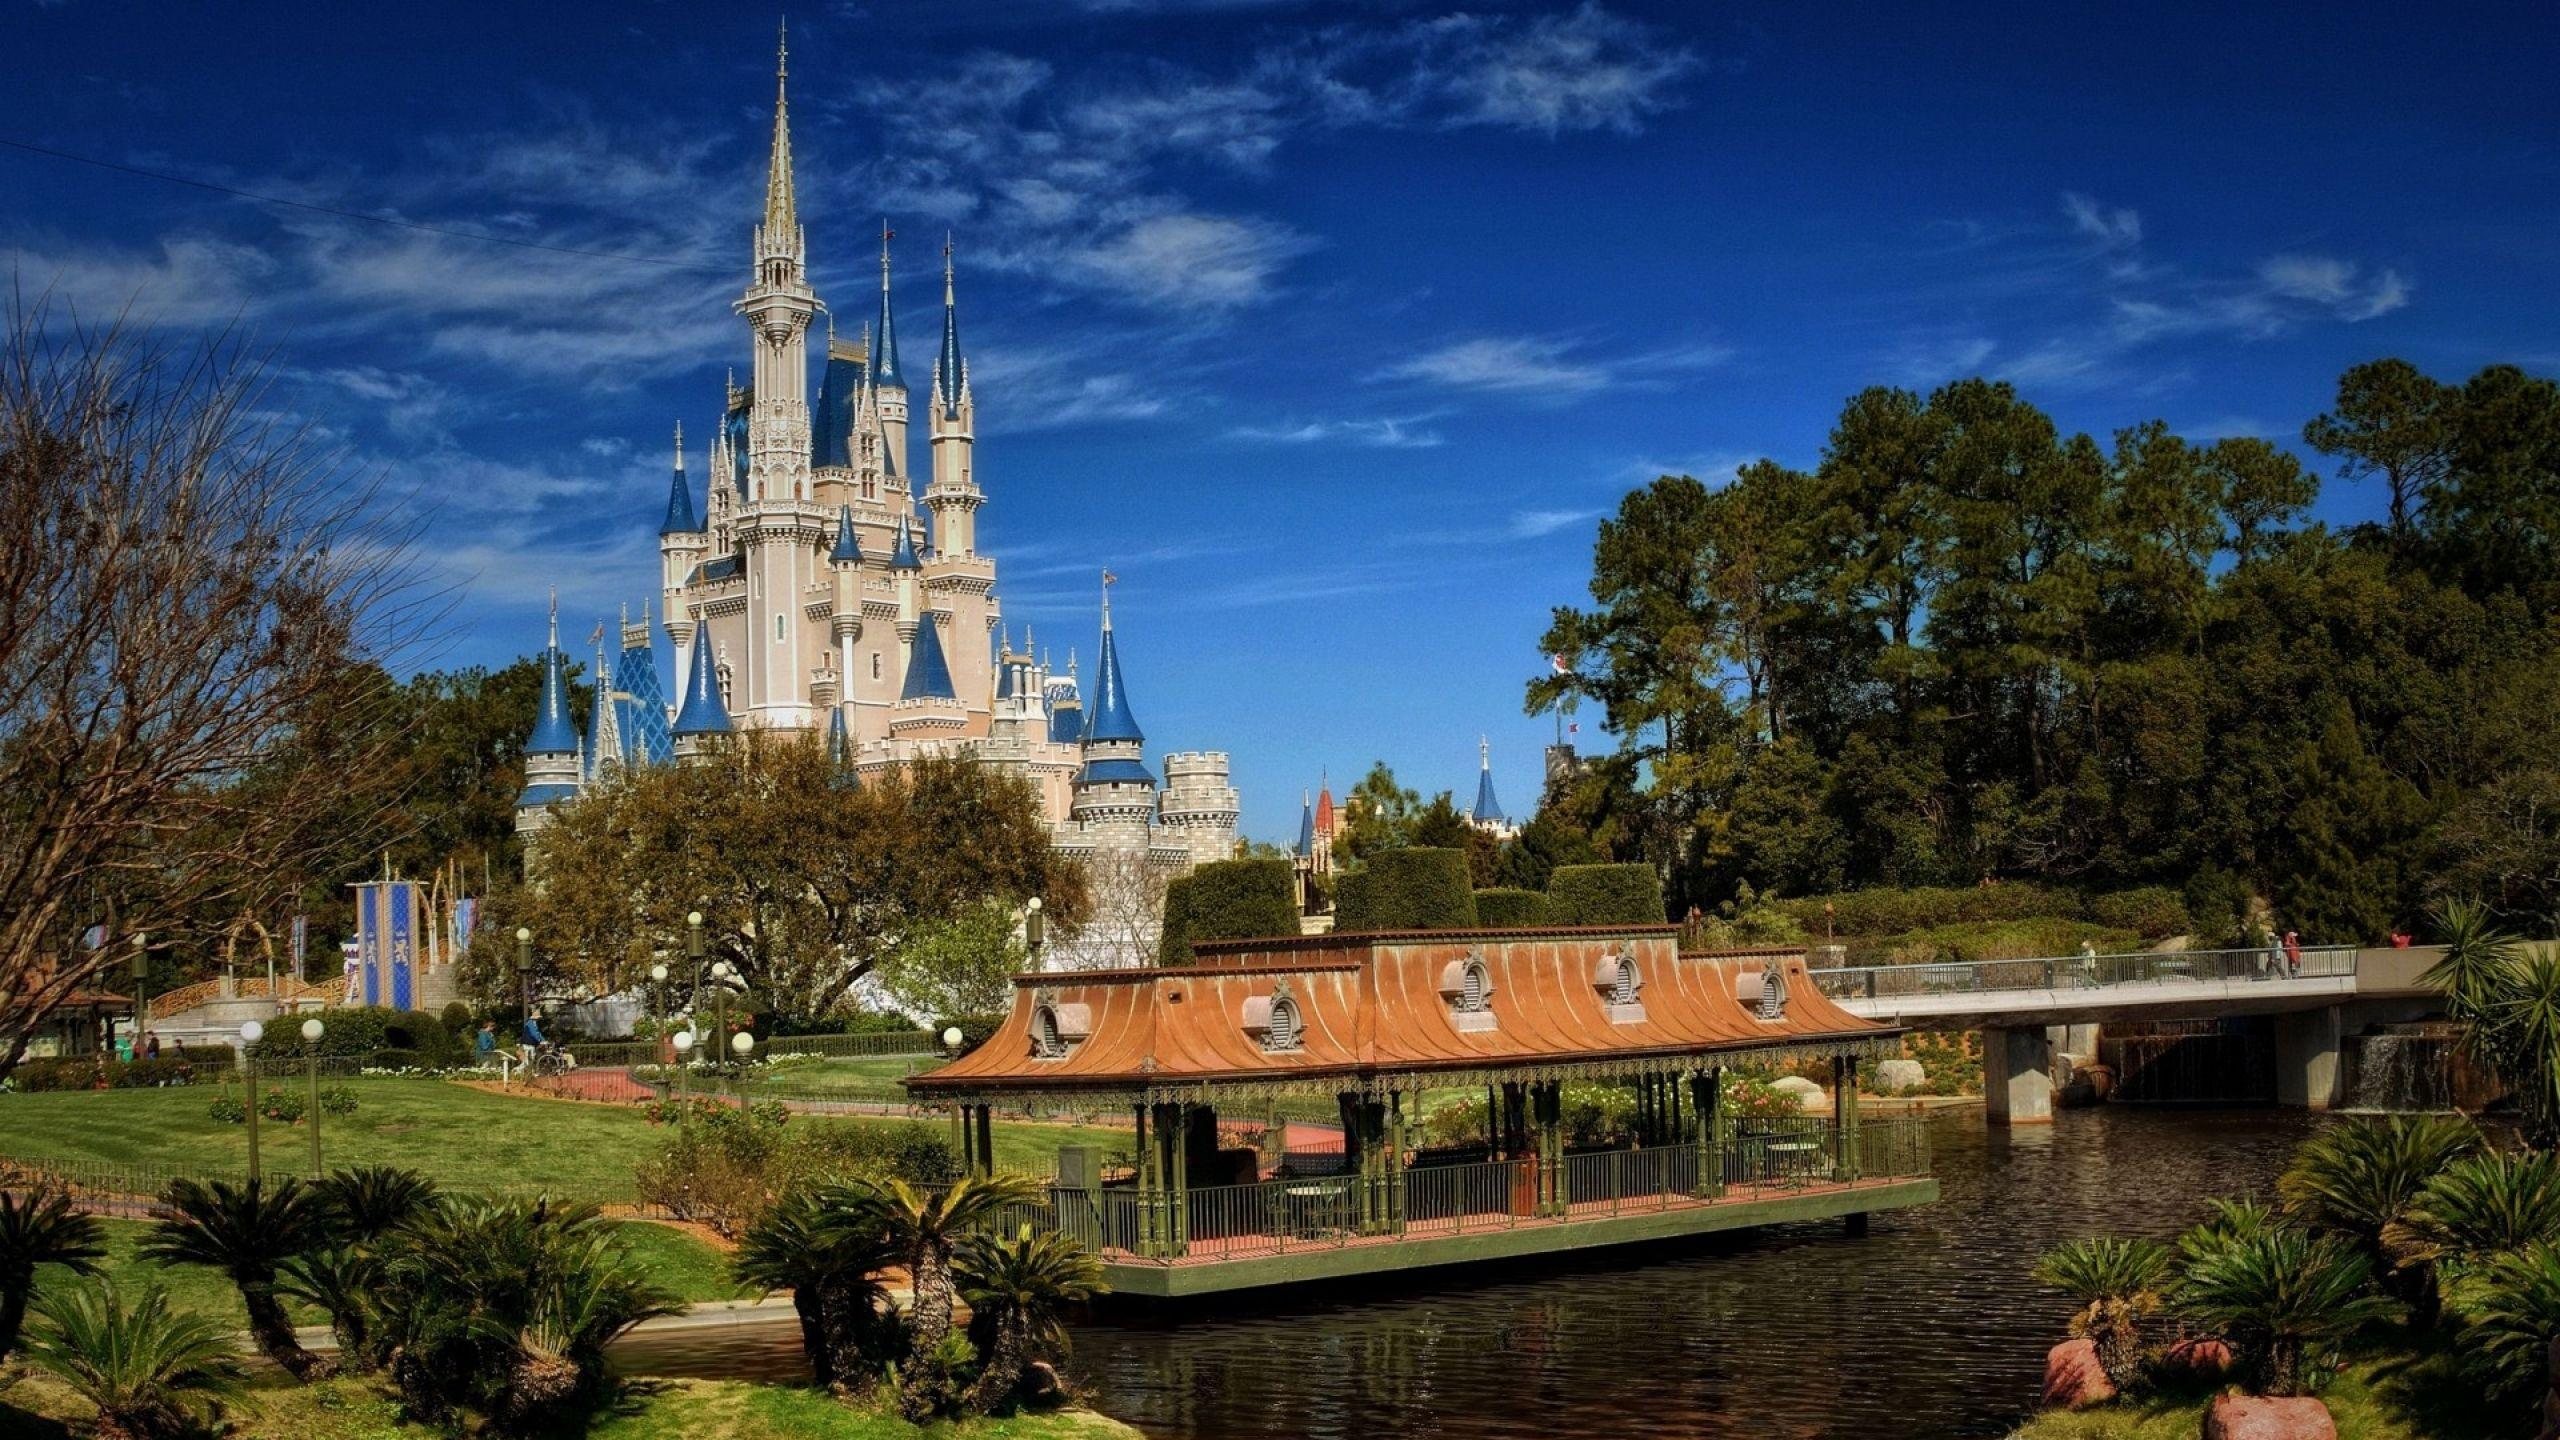 Download Wallpaper 2560x1440 Walt disney world, coast, Building ...